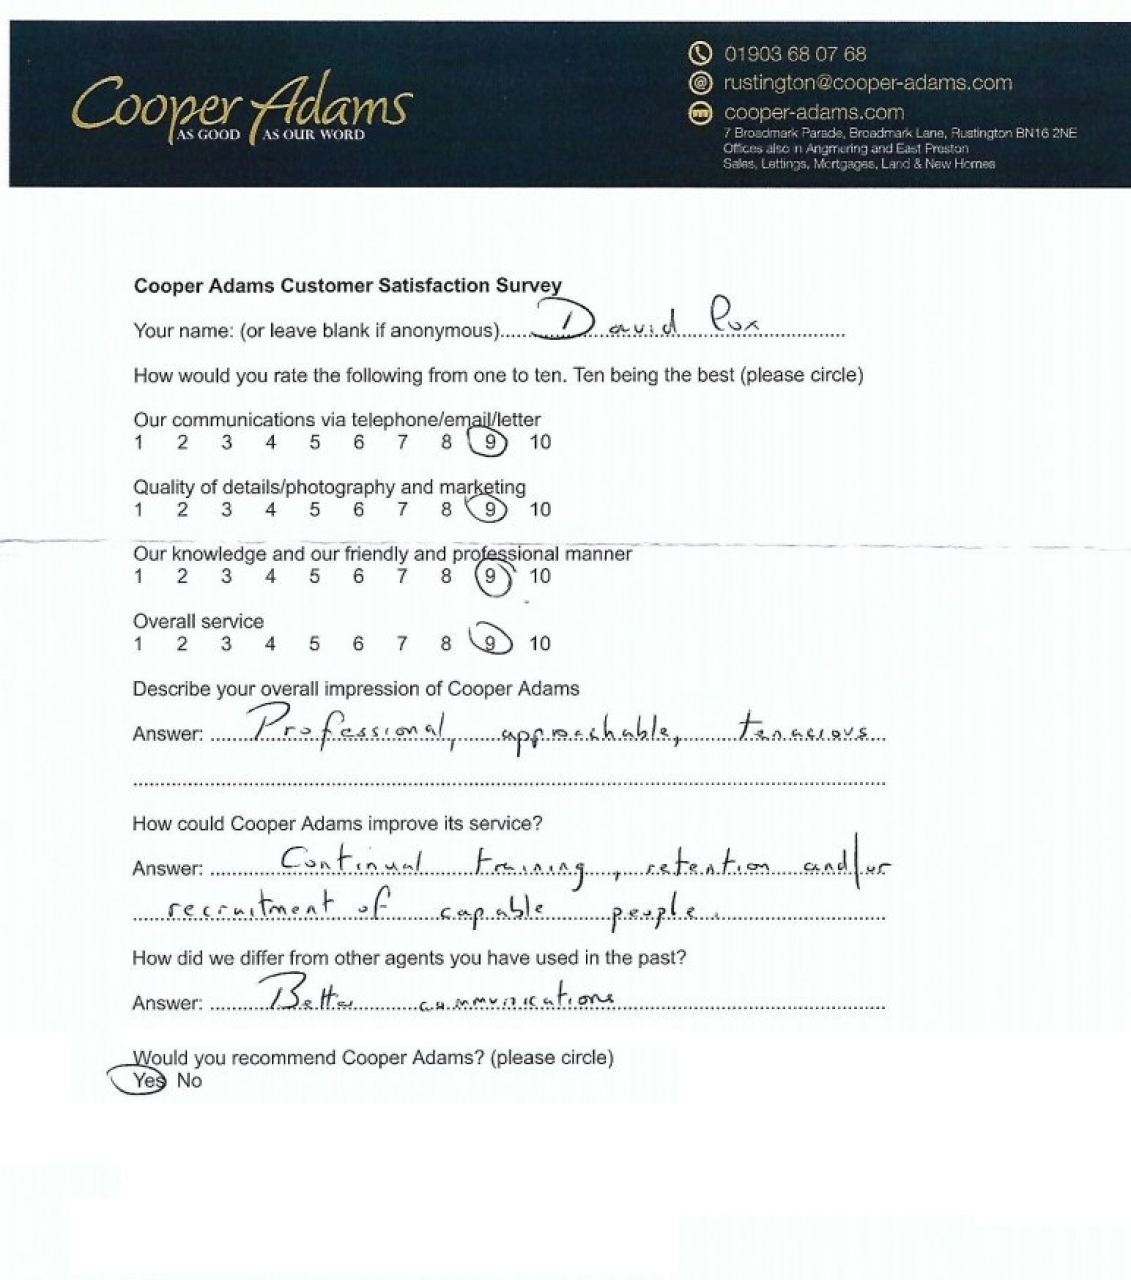 Customer satisfaction survey from David Cox